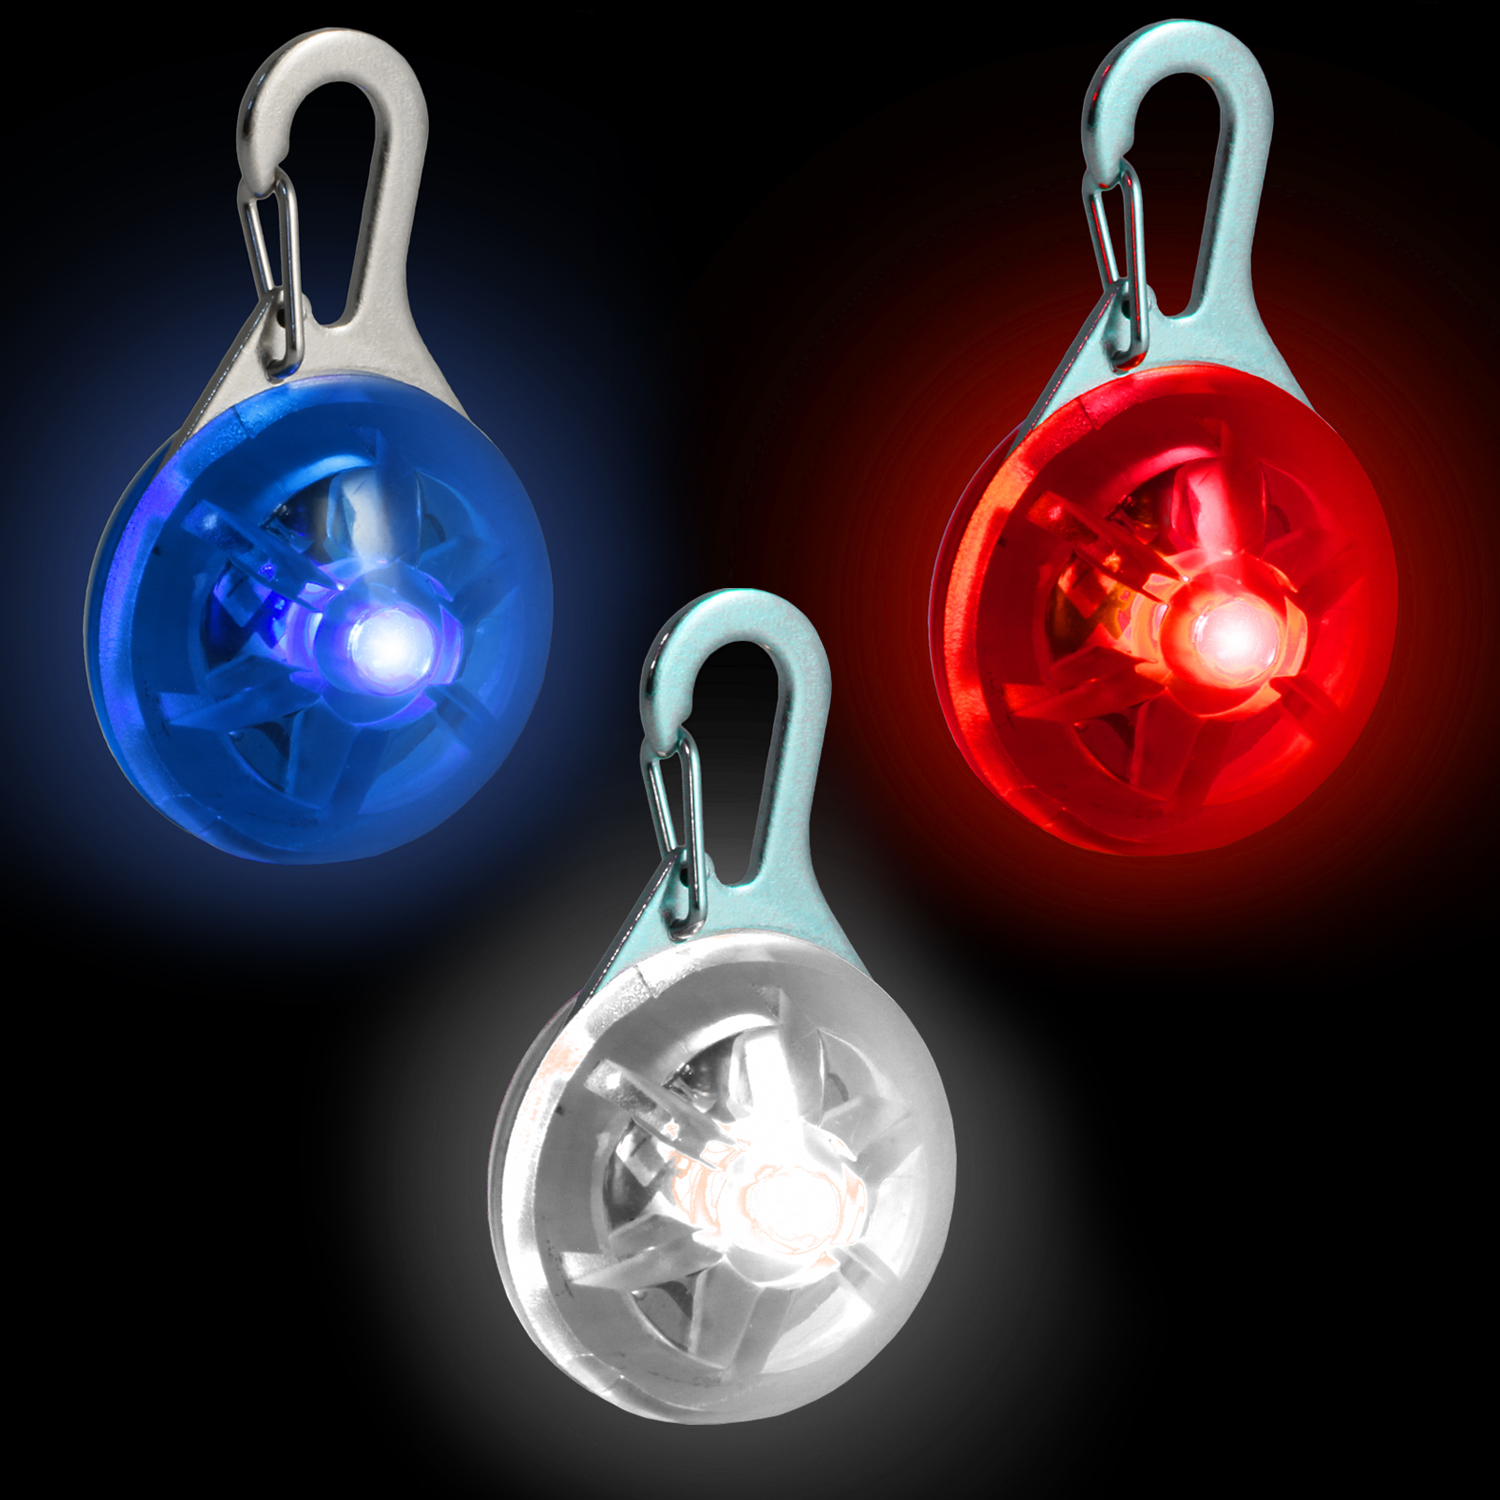 Red, Blue & White LED Safety Clip-On Night Light Pendant for Running Walking Cycling with 3 Modes